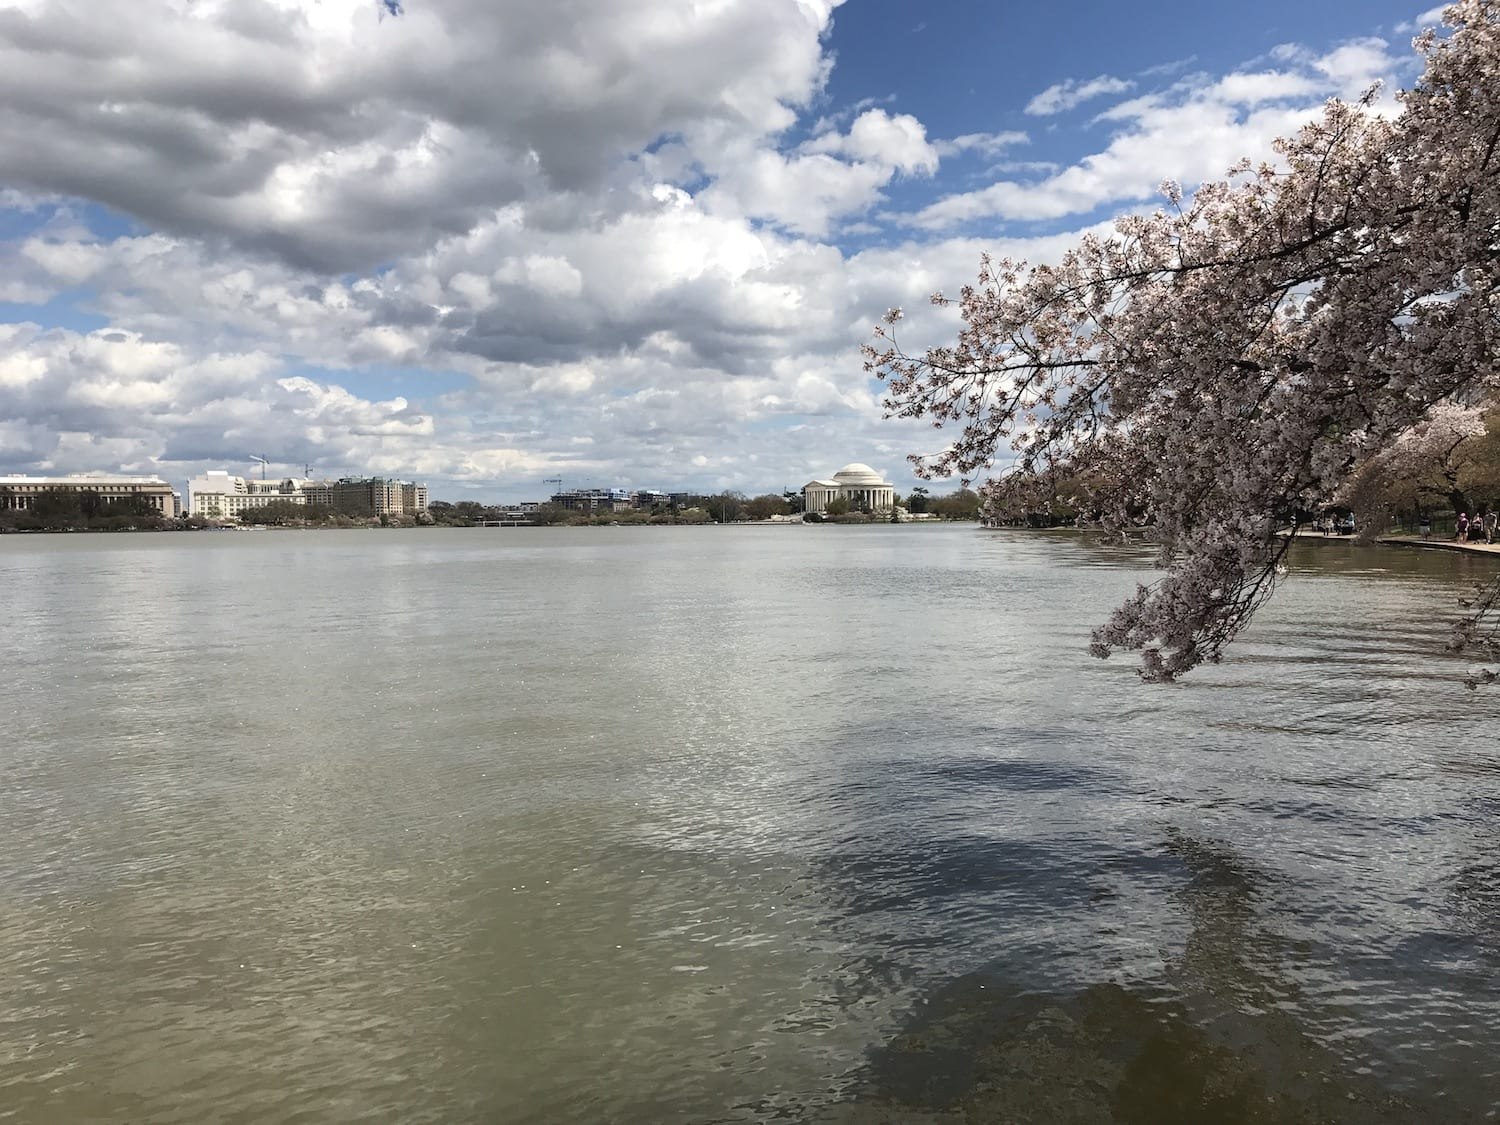 Jefferson Memorial from the shore of the Tidal Basin